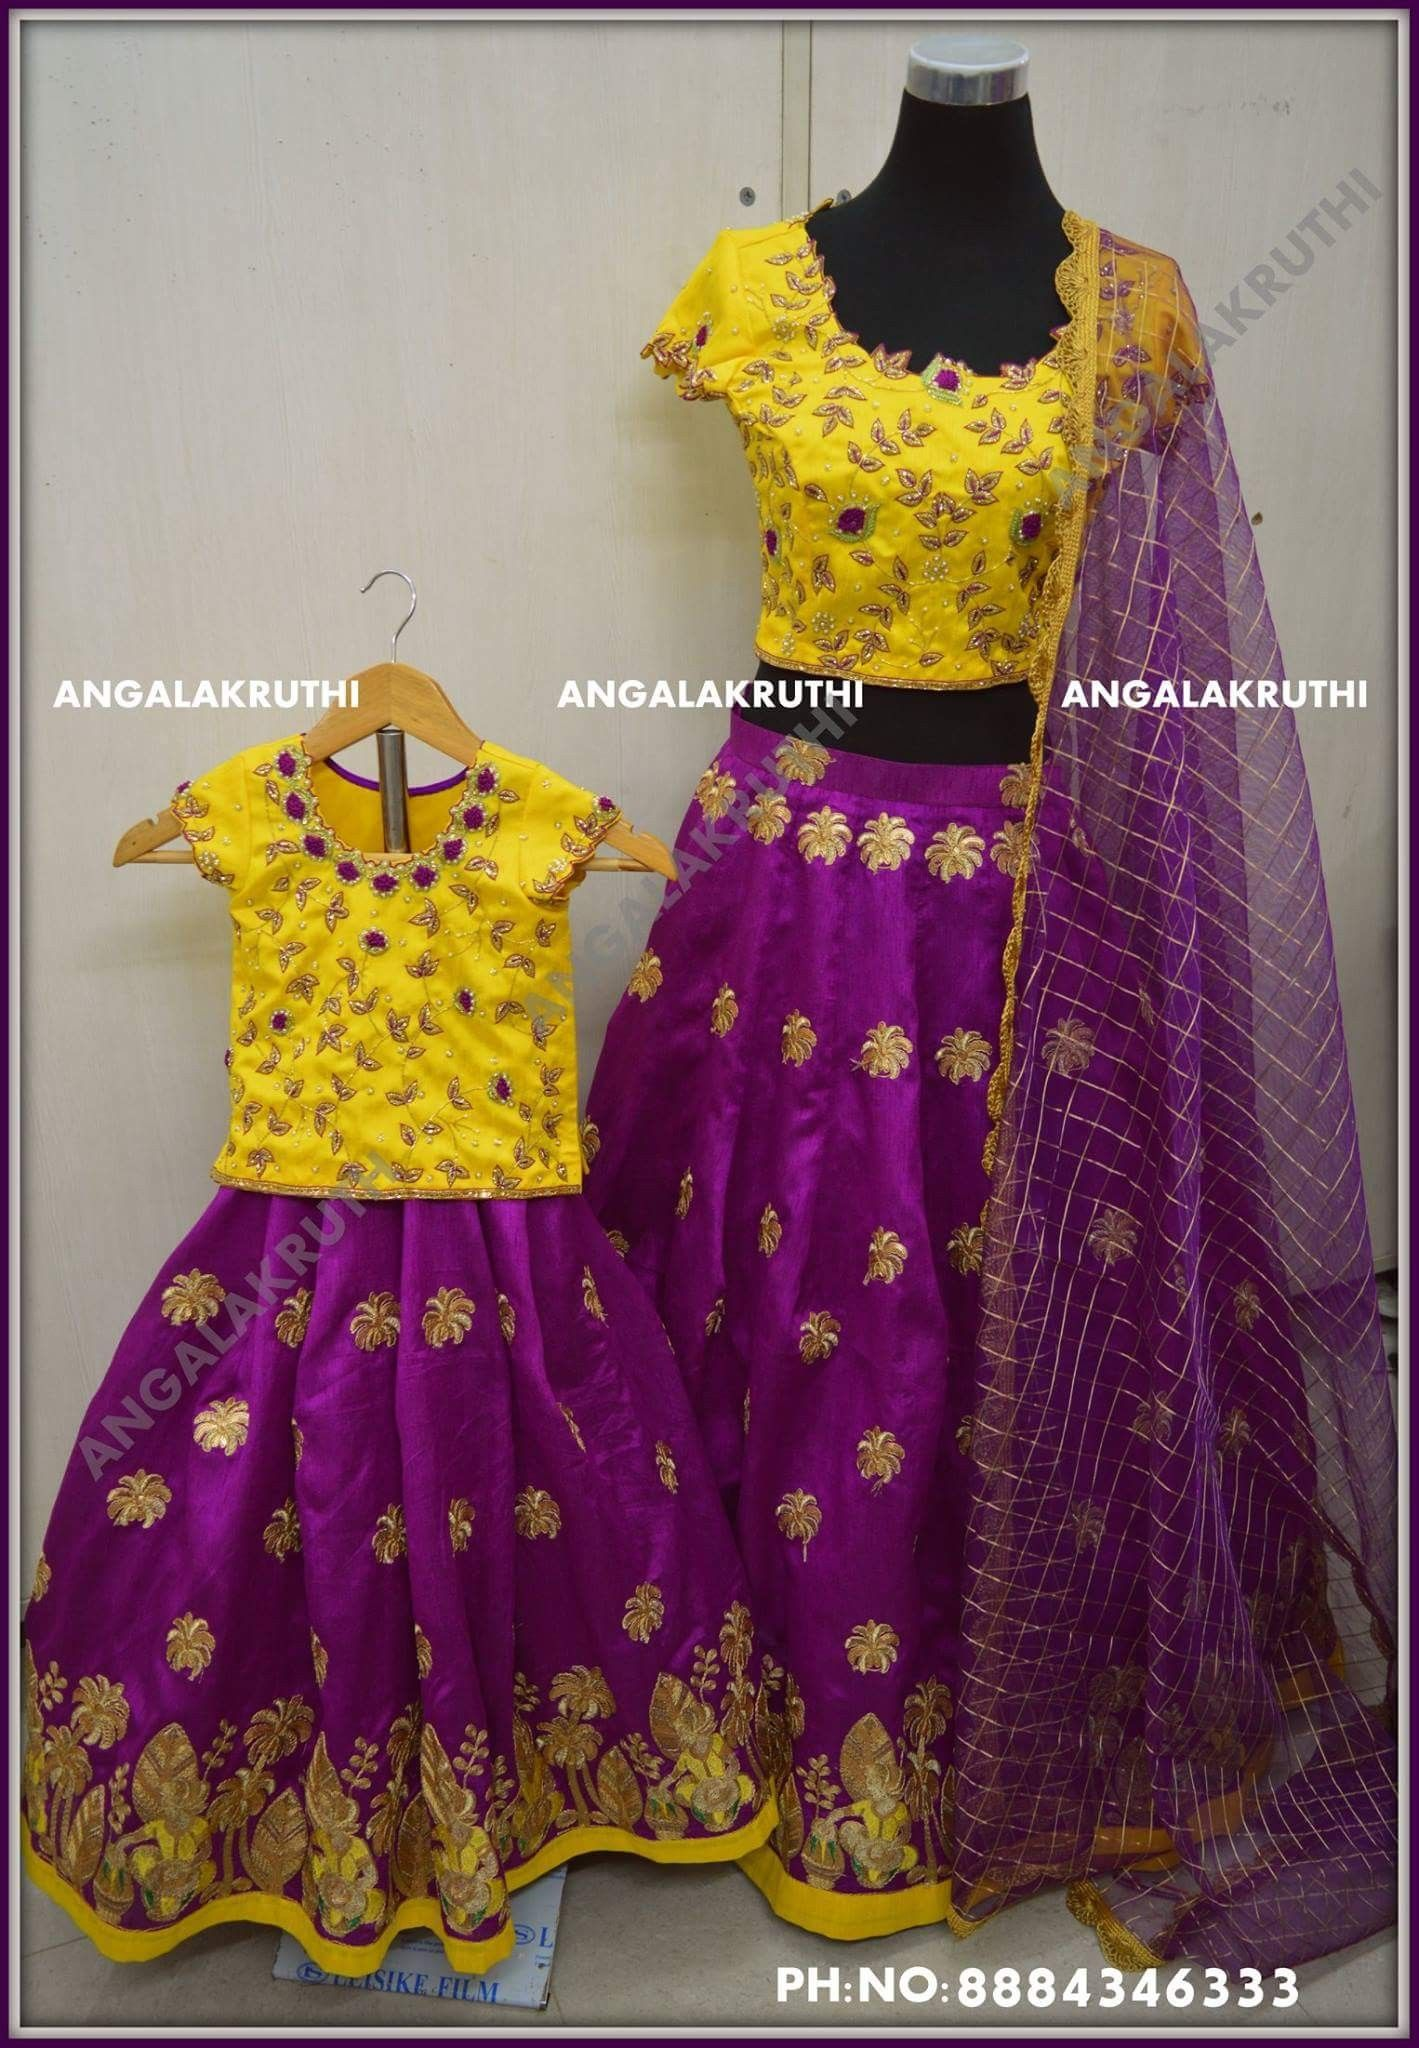 6b5abf0a30 Mother and Daughter matching dress designs by Angalakruthi boutique  Bangalore